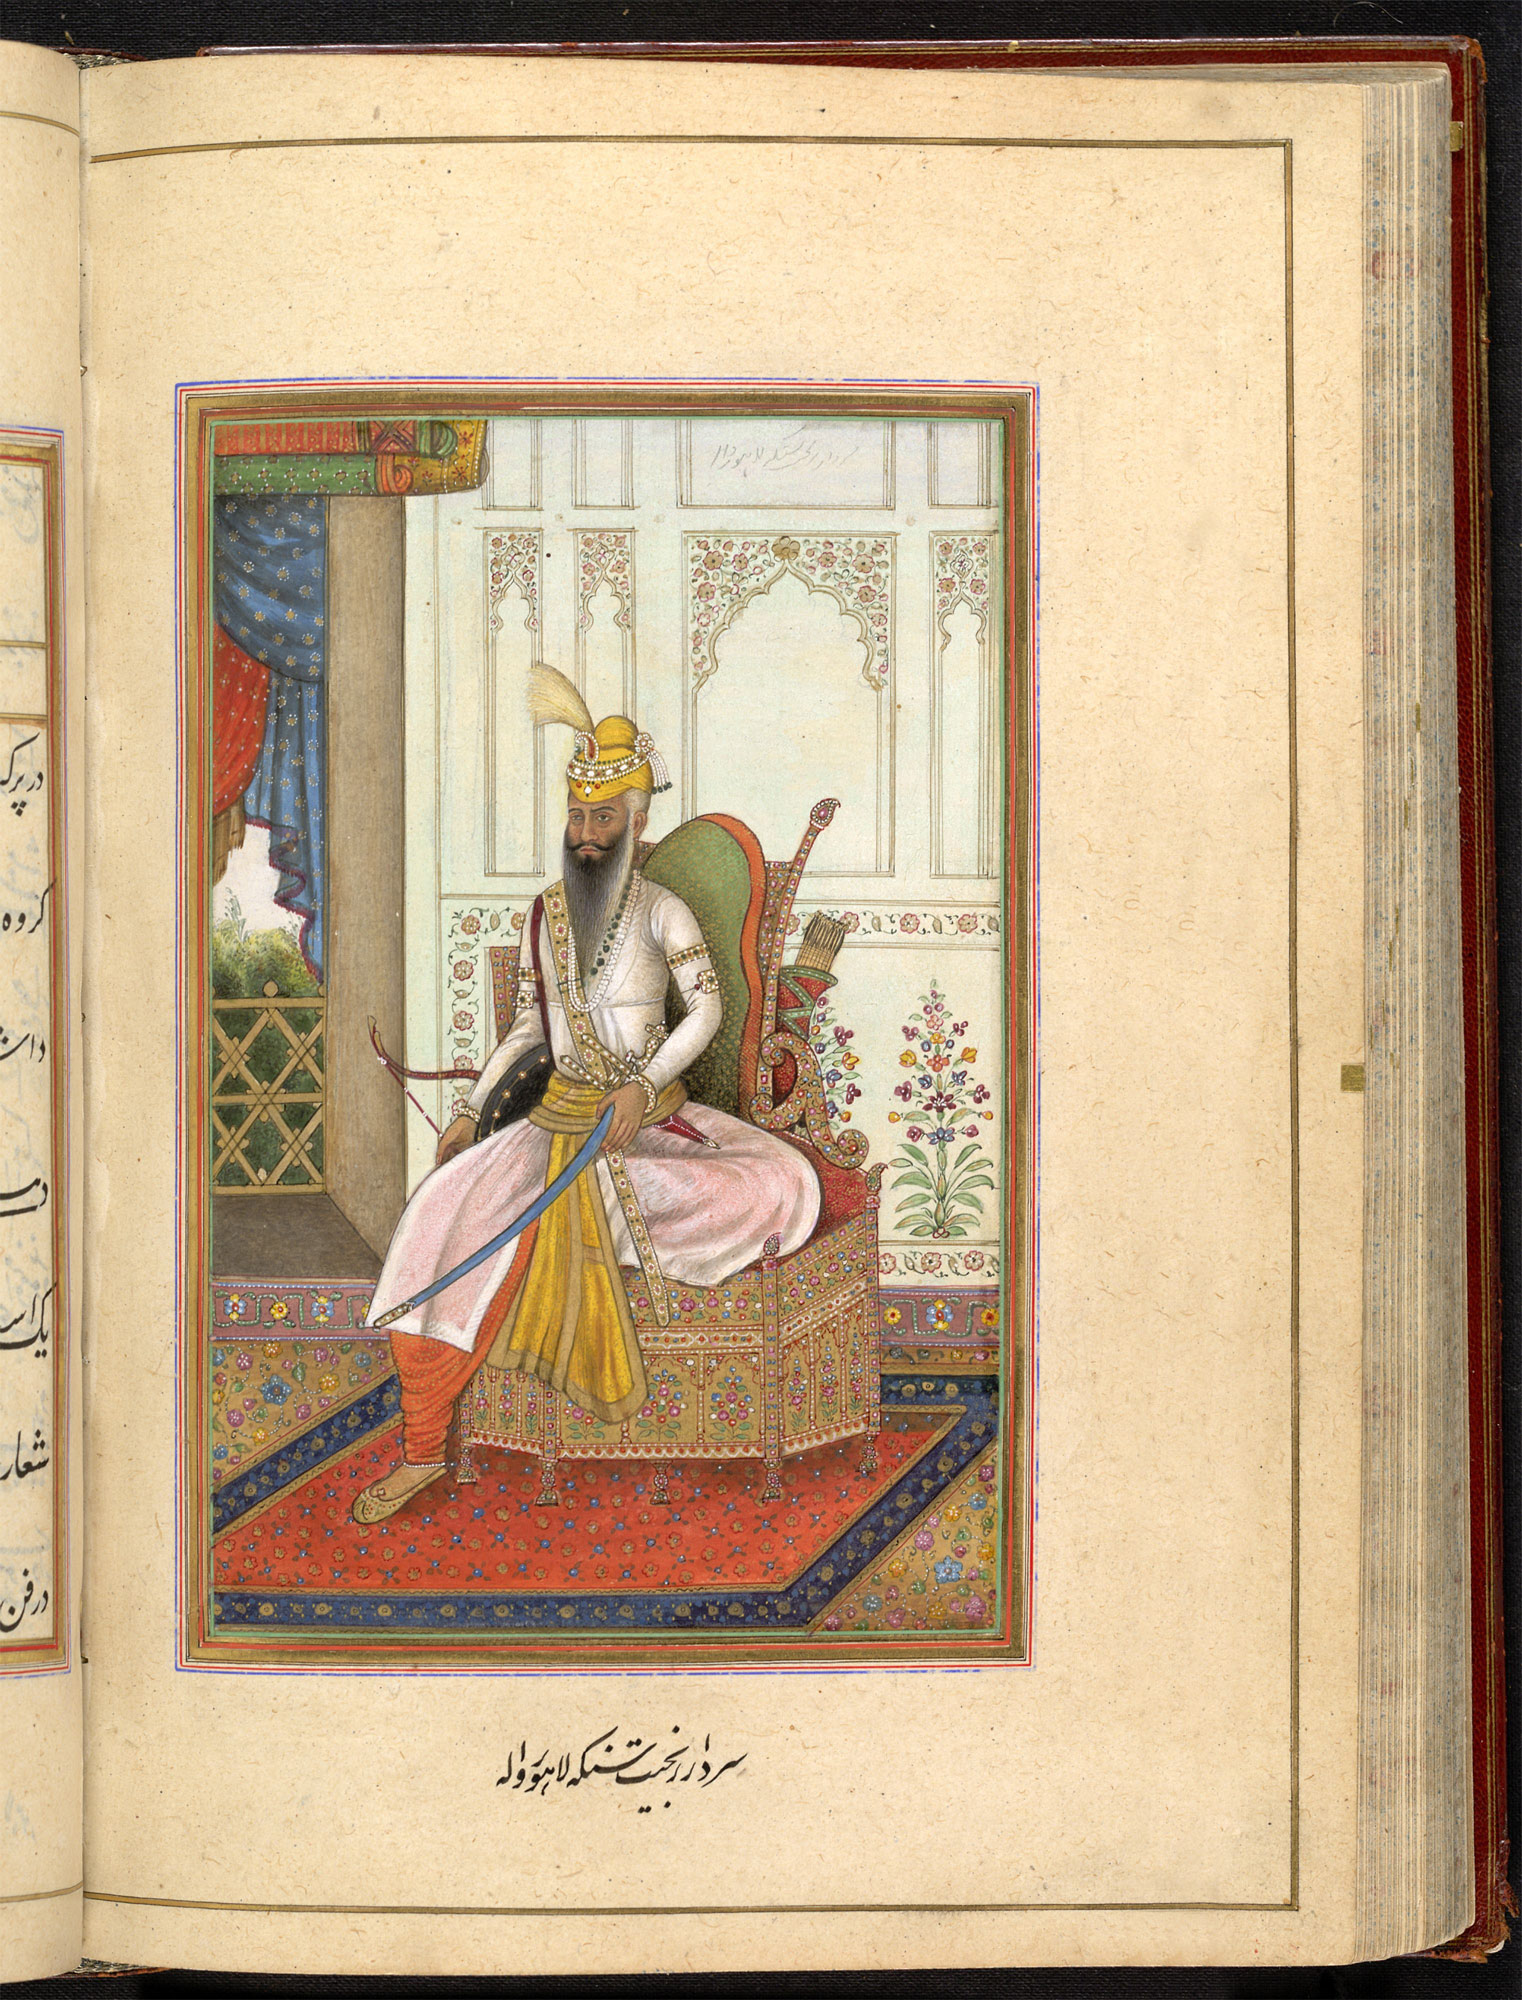 An illustration of Maharaja Ranjit Singh